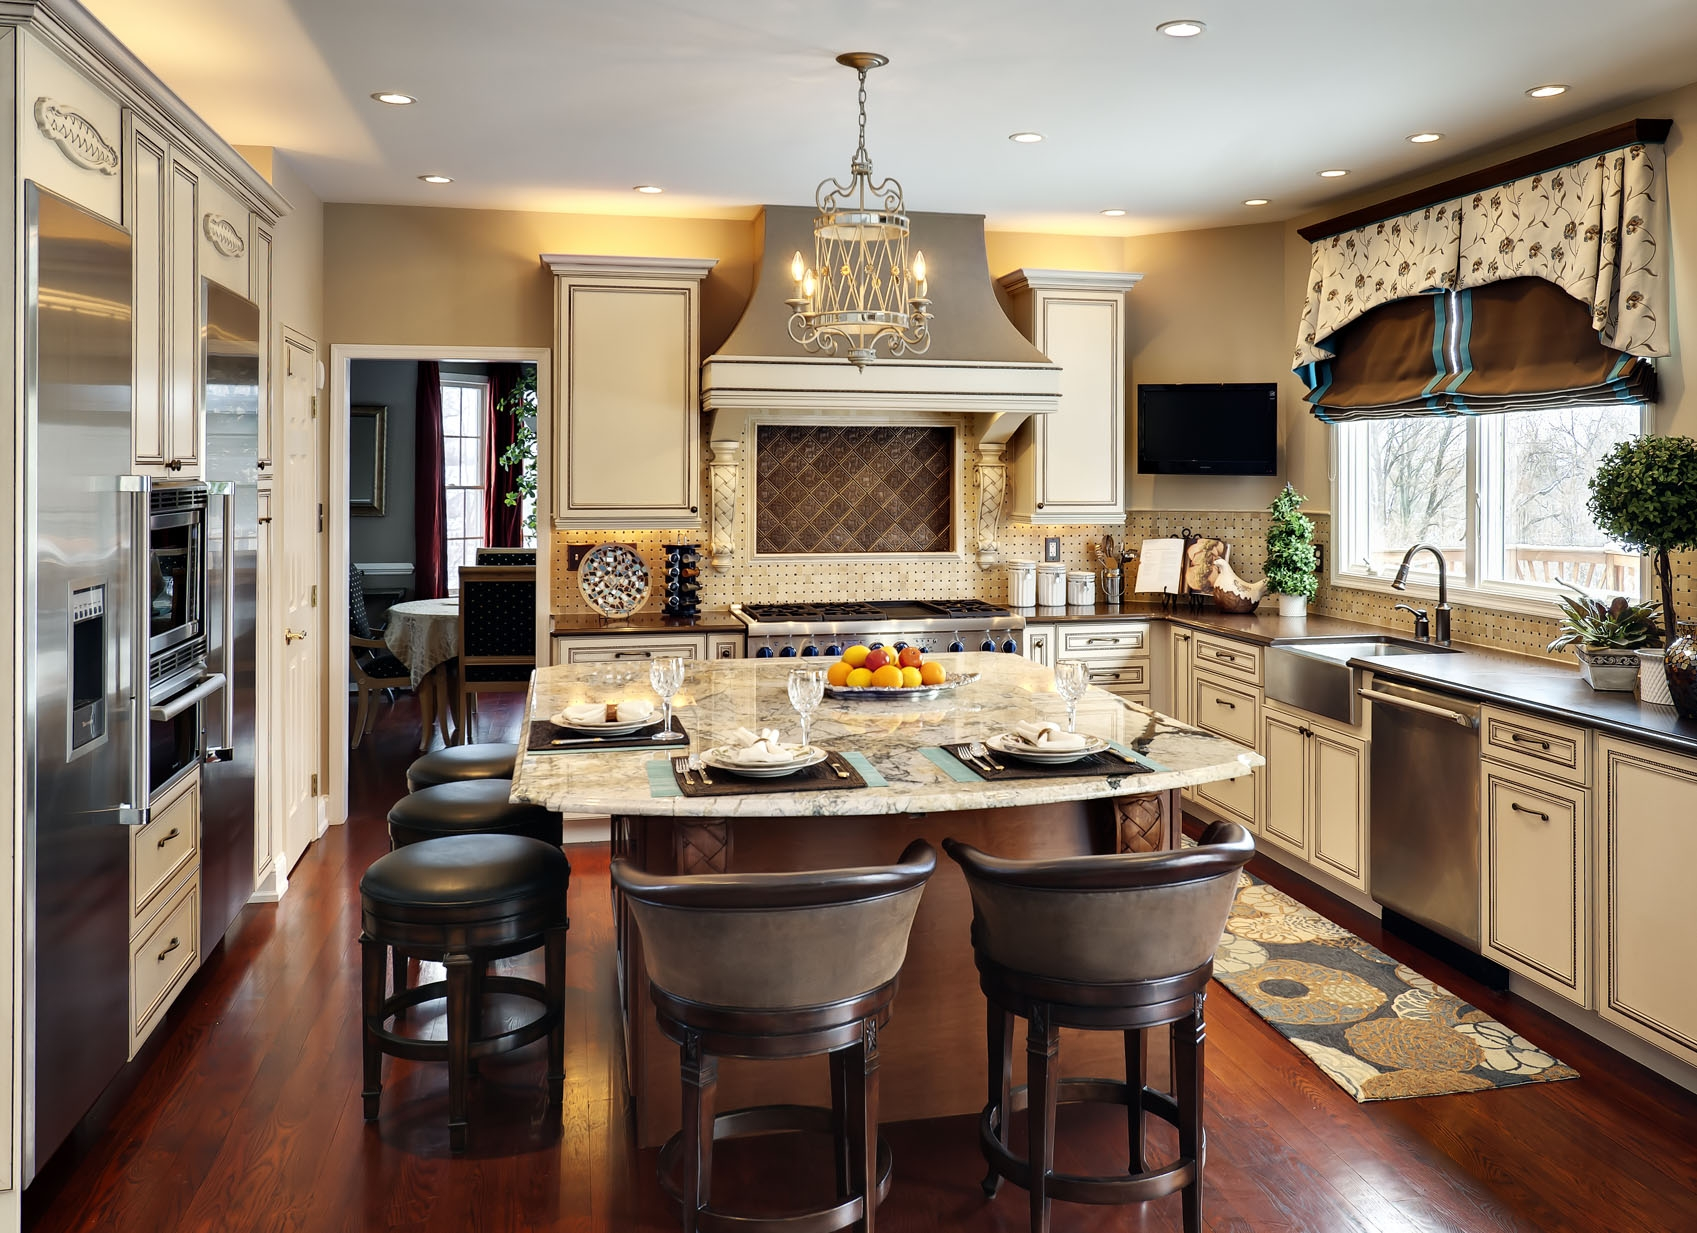 Small Eat In Kitchen Table Ideas Whats Cookin In The Kitchen Decorating Den Interiors